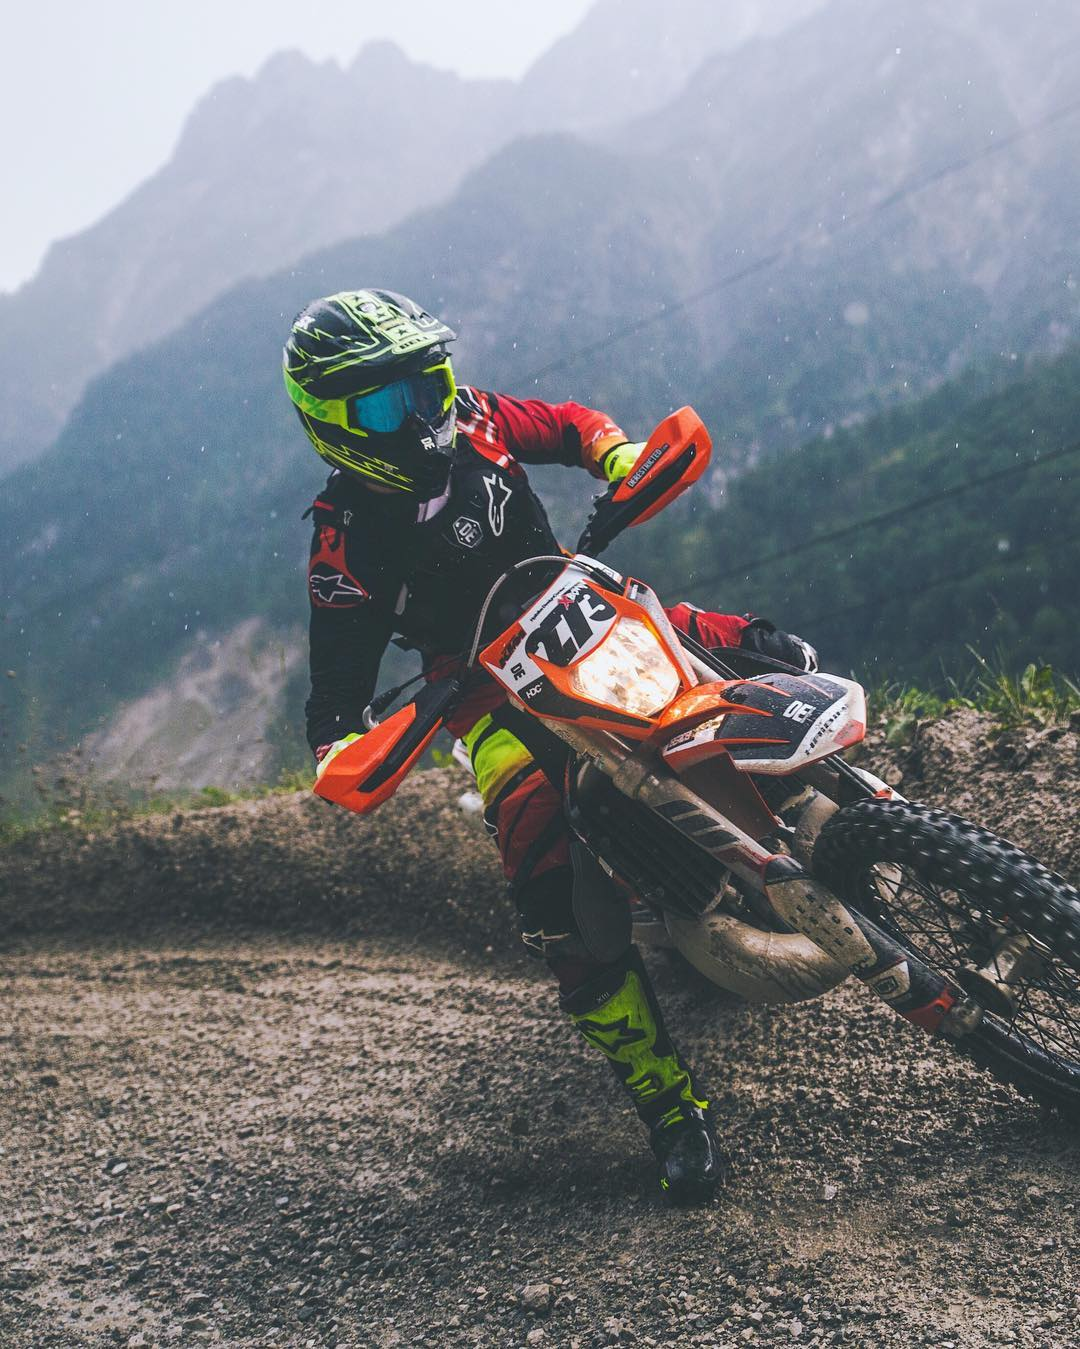 You get some serious braaaaap on the #300exc ! #Enduro #moto #ktm 📷 @zajcmaster